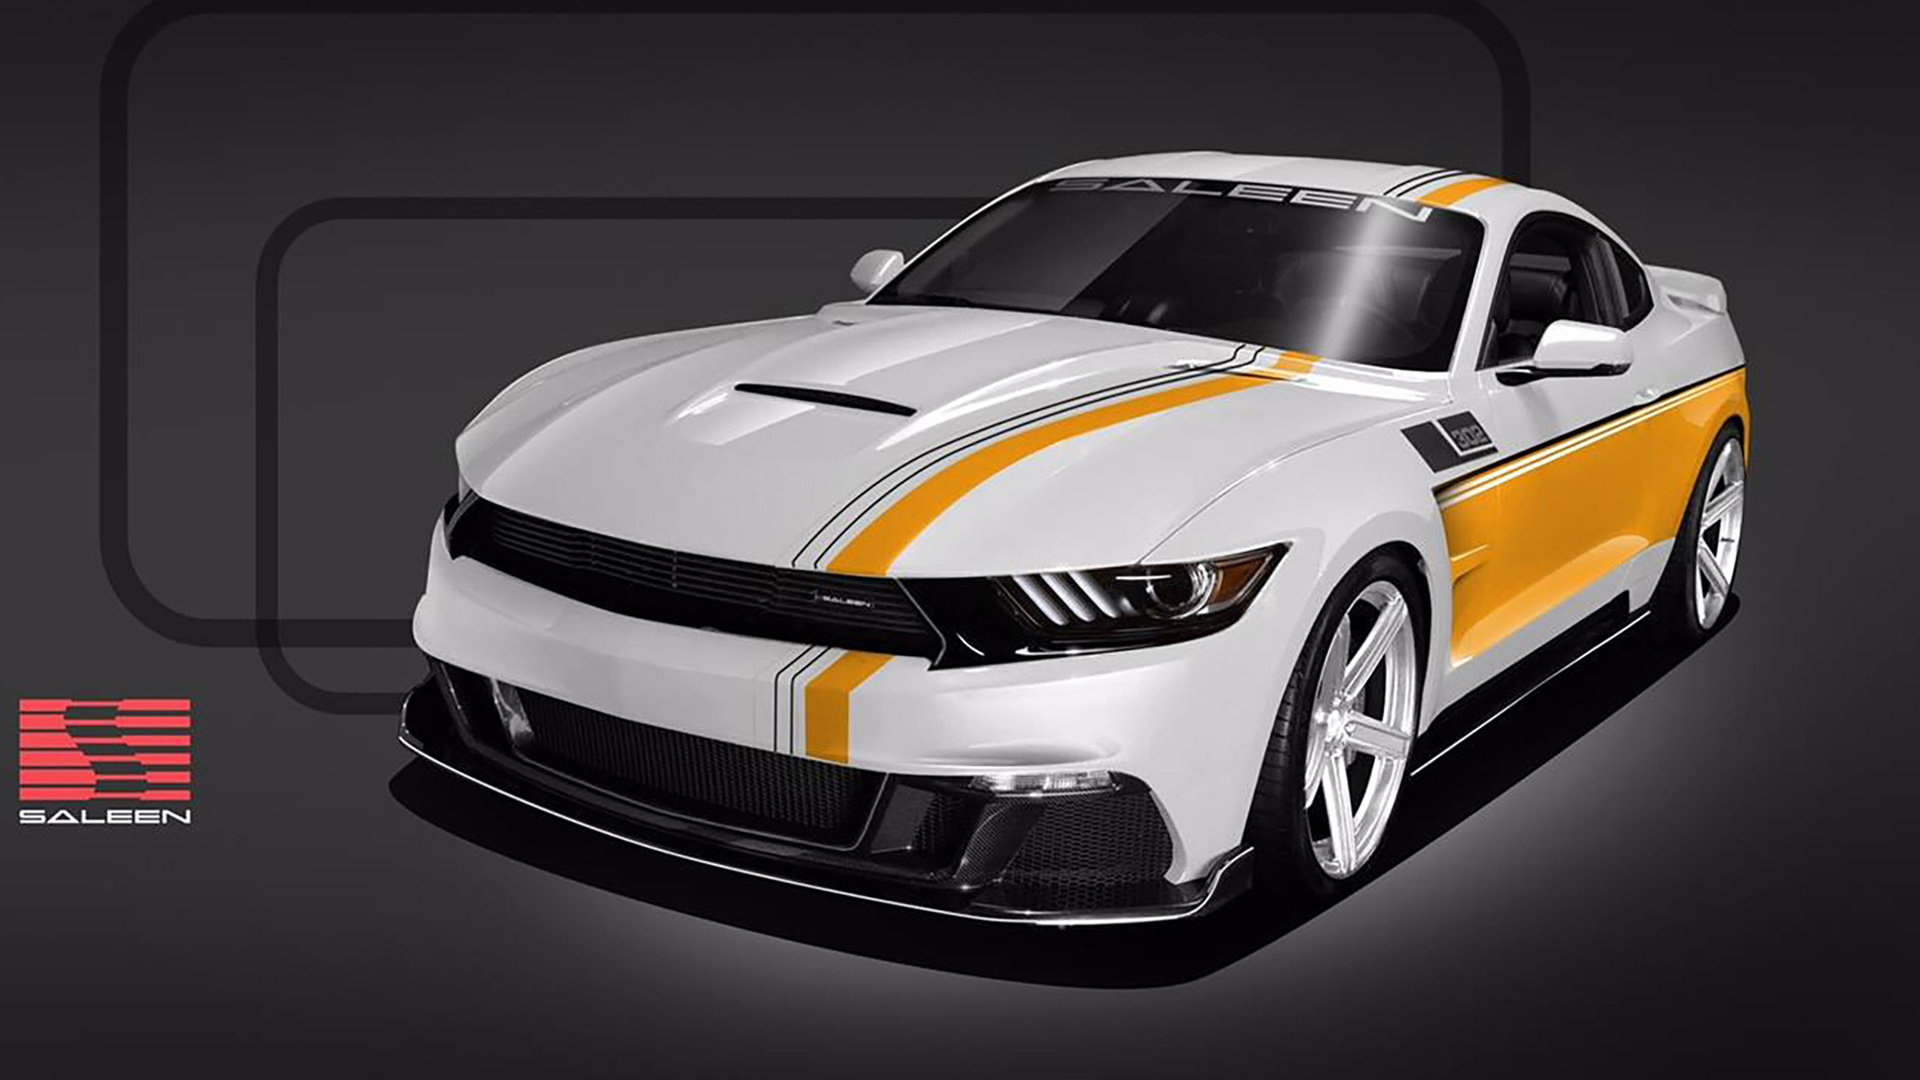 Car Spy Shots, News, Reviews, and Insights - Motor Authority - Page 7